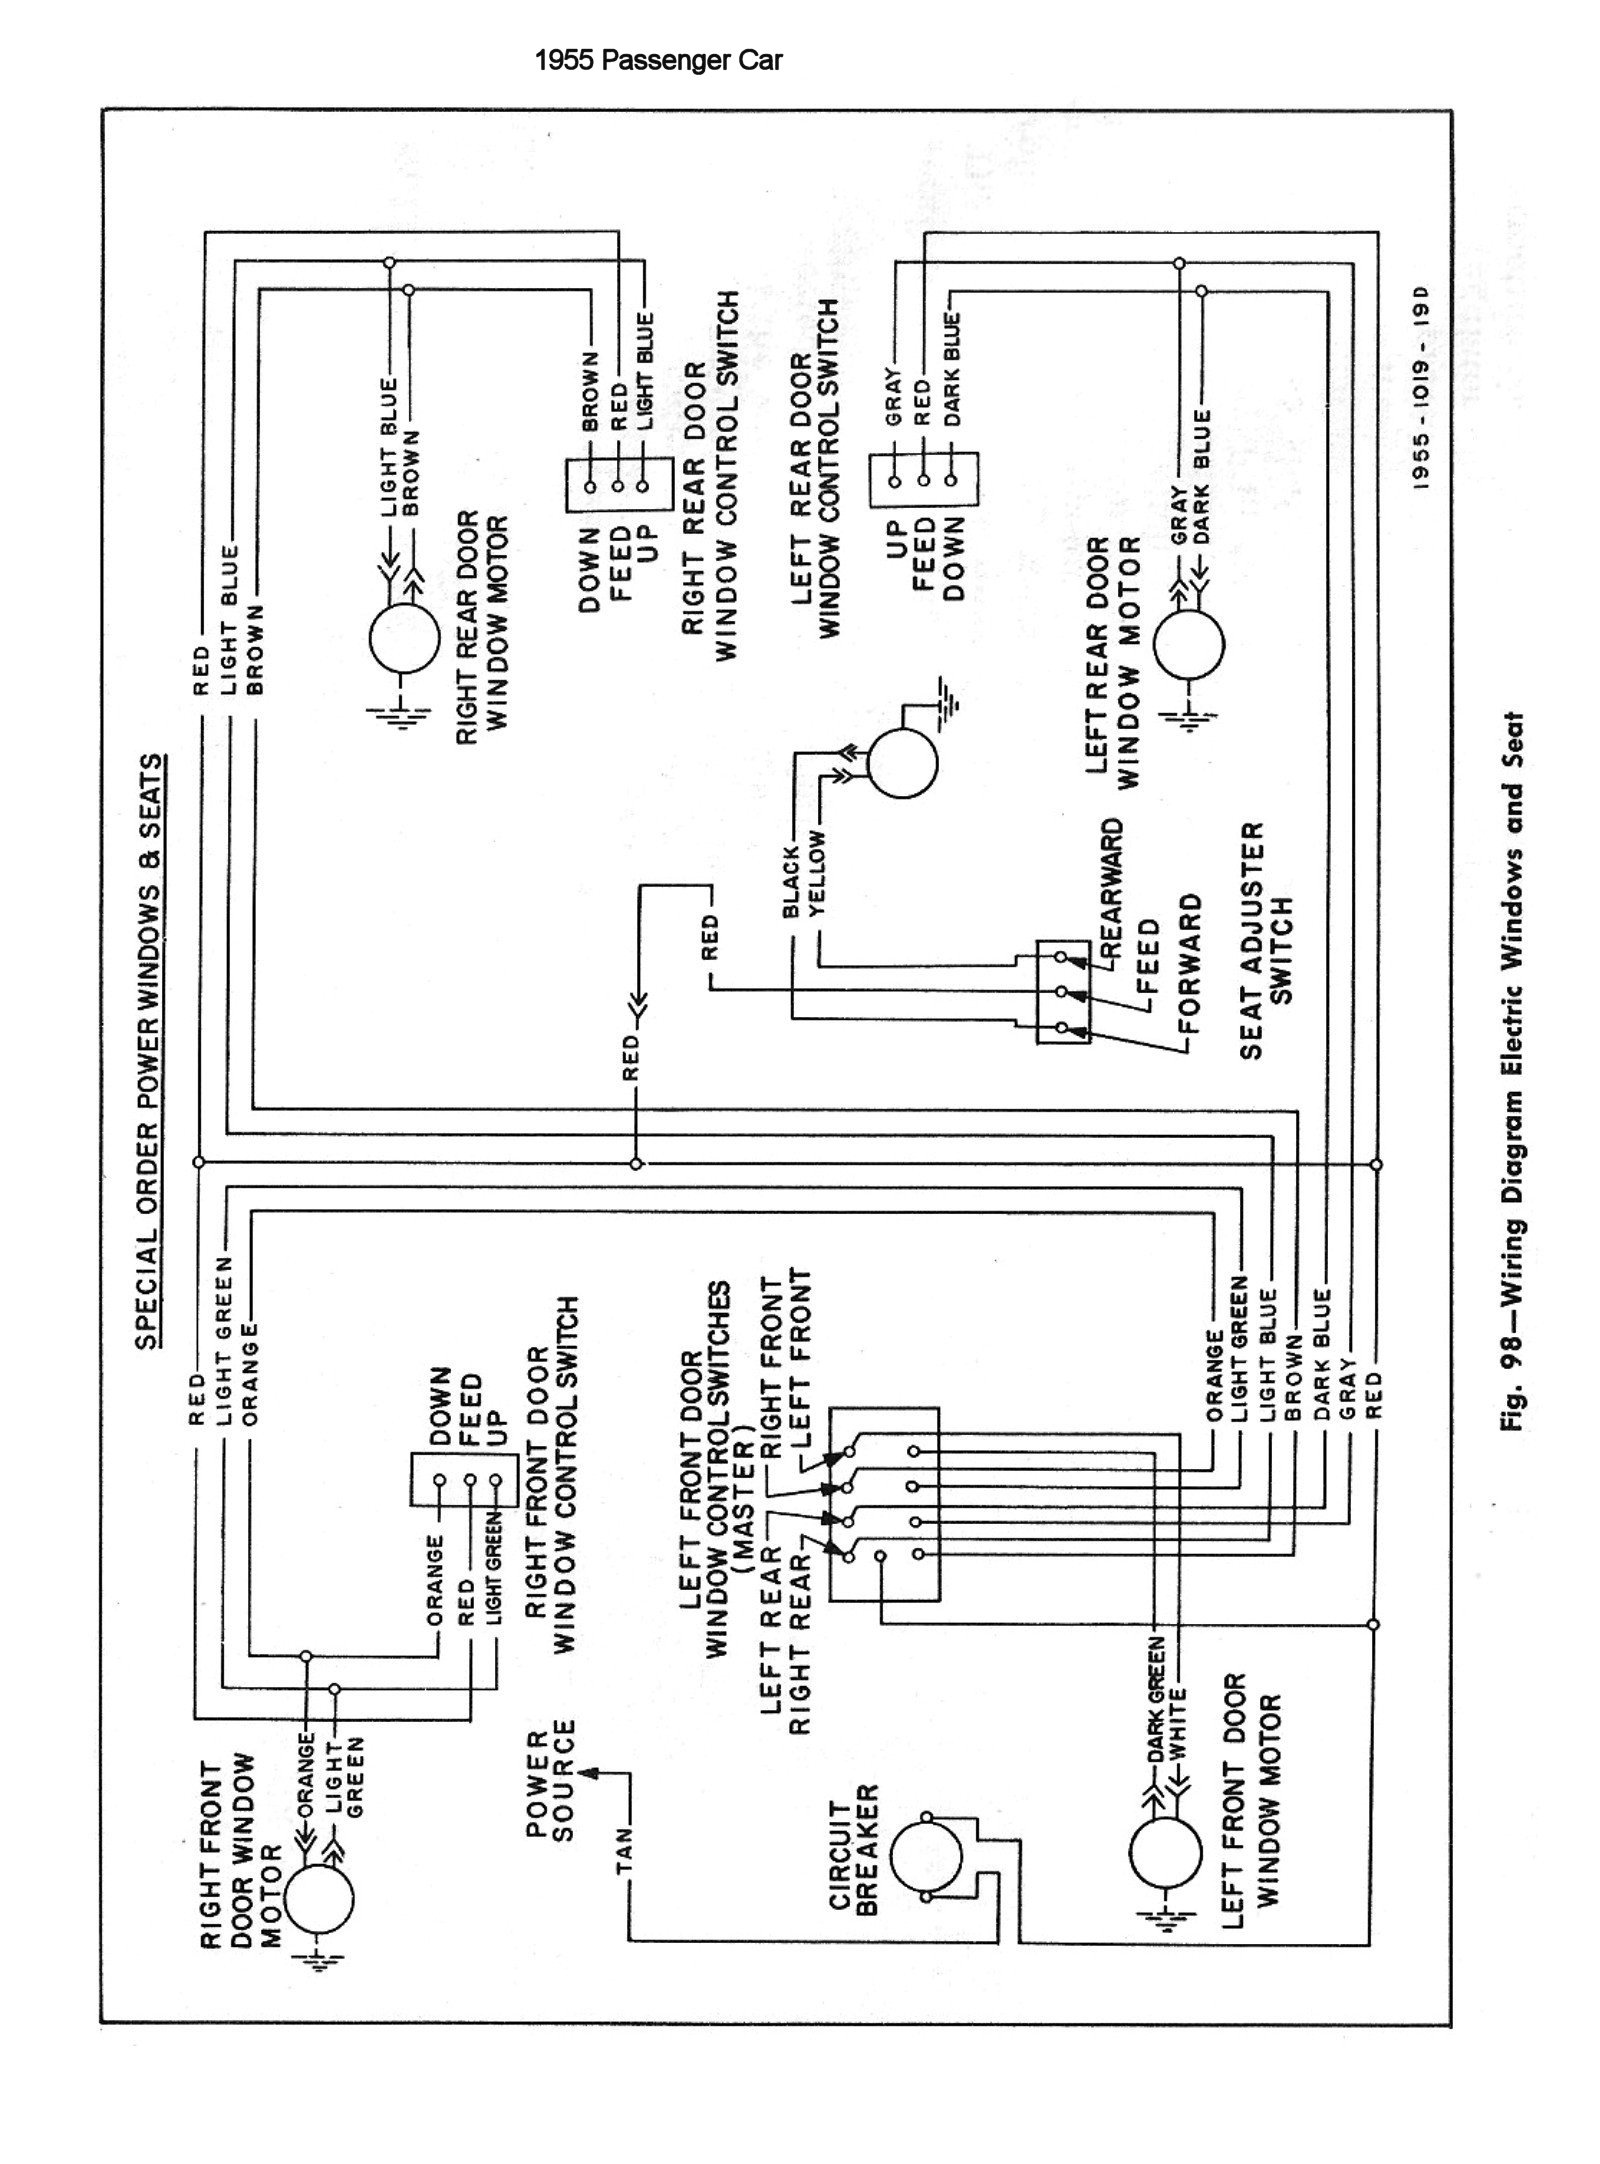 55csm0146 chevy wiring diagrams 1986 chevy truck wiring diagram at gsmportal.co